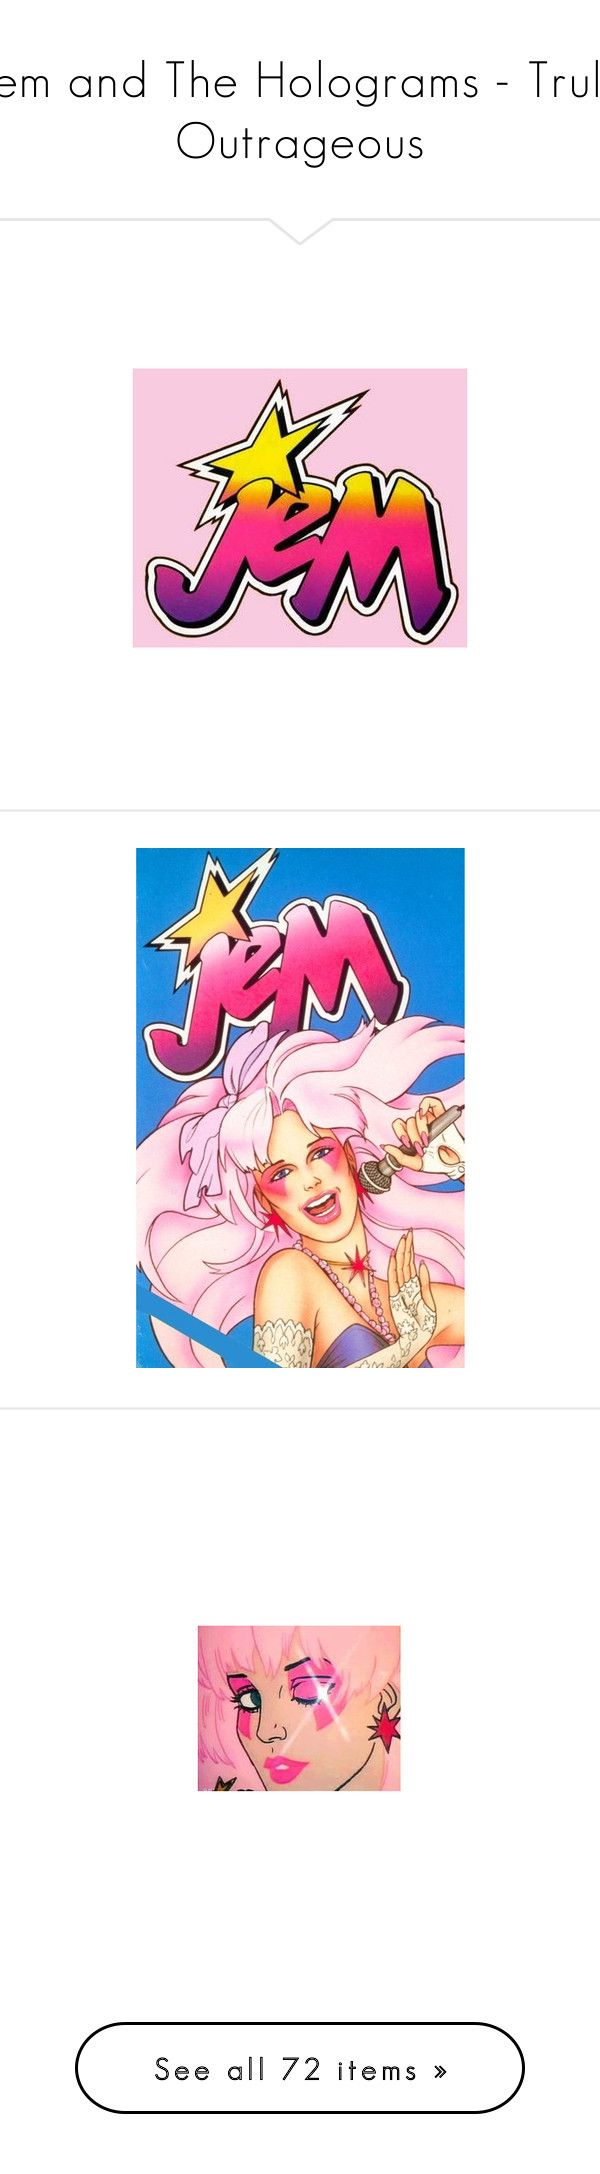 """""""Jem and The Holograms - Truly Outrageous"""" by twistedvine ❤ liked on Polyvore featuring jem, jem and the holograms, pictures, cartoon, beauty products, makeup, eye makeup, eyeshadow, sephora collection eyeshadow and sephora collection"""